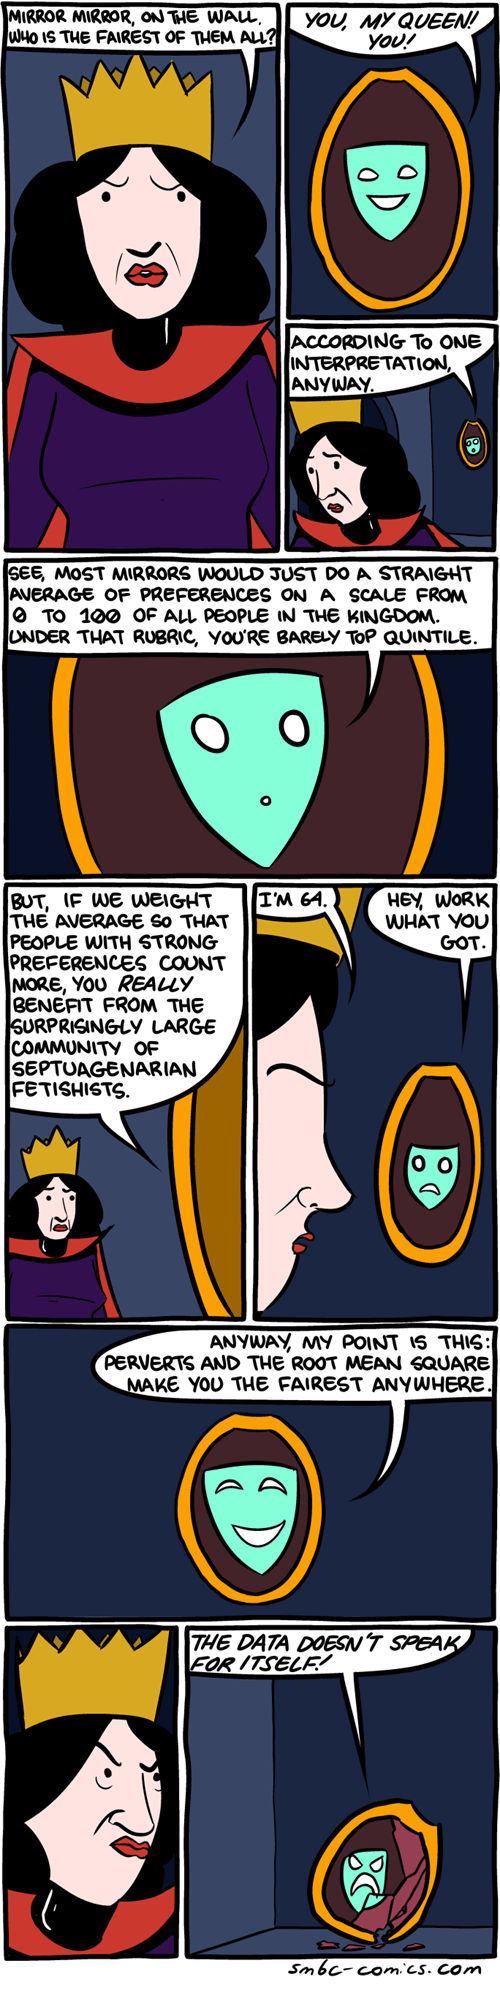 queen mirrors snow white math web comics - 8271556352